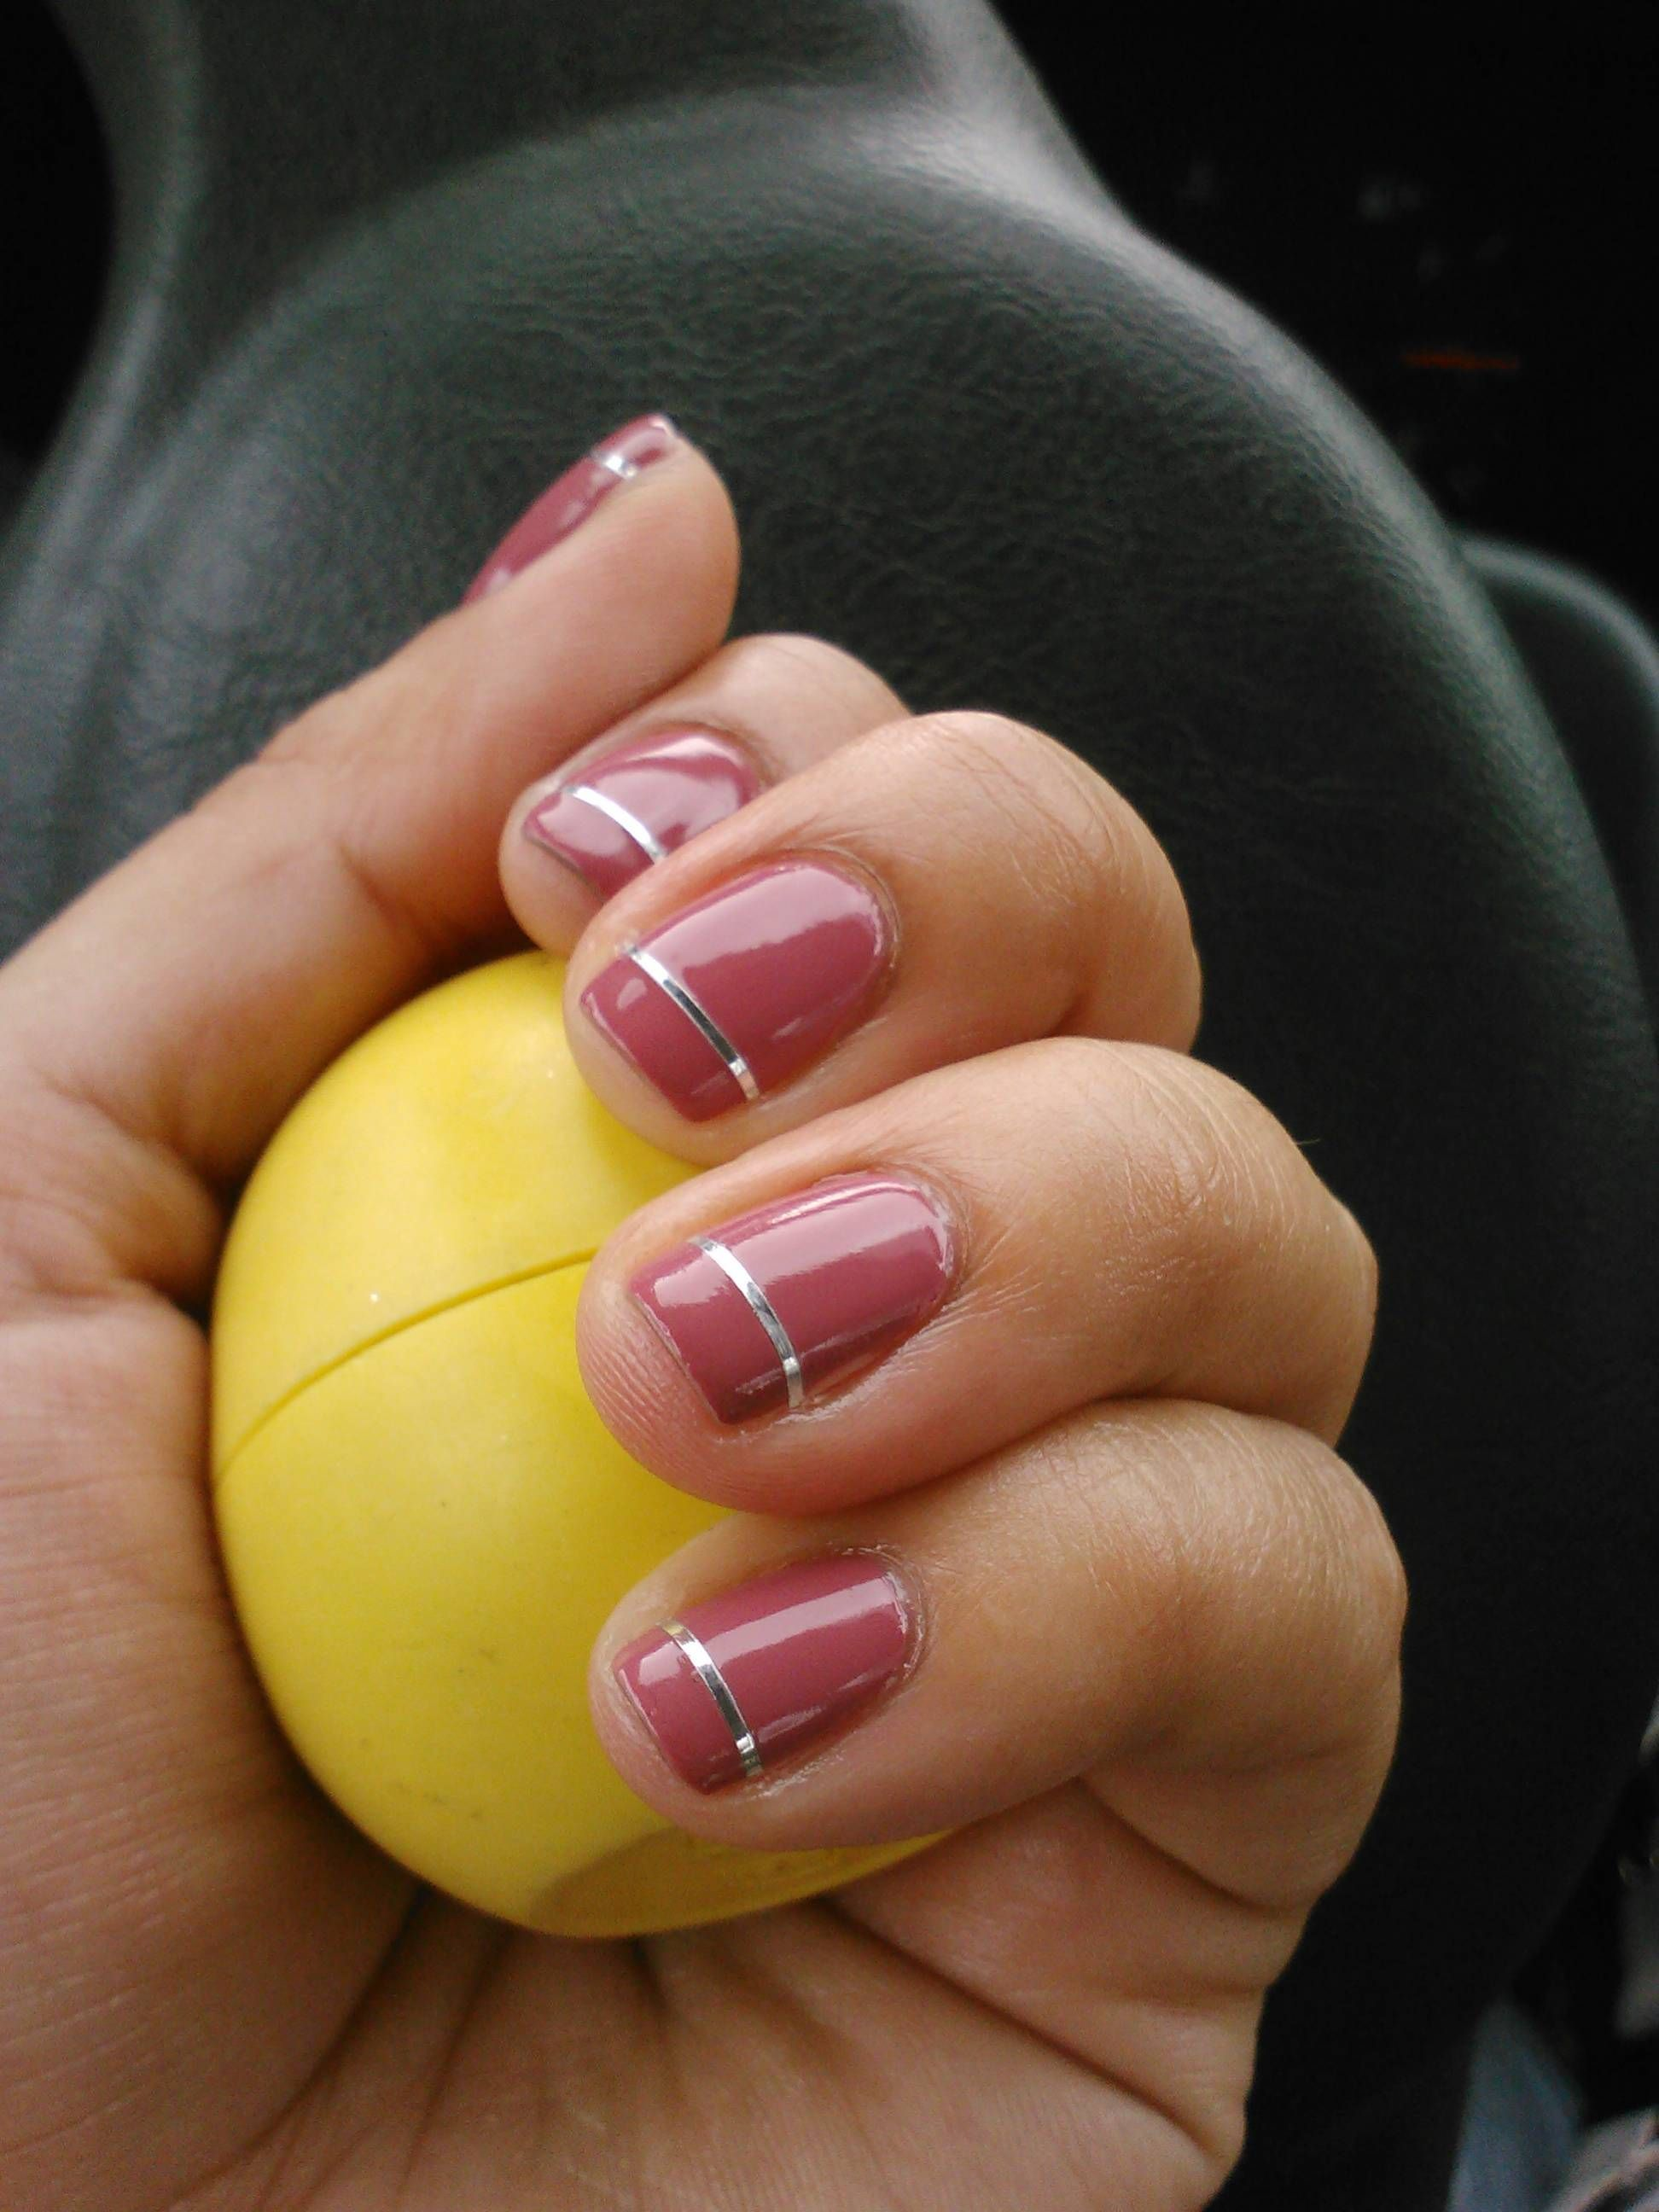 Remake of pinterest pin! Wet&Wild: Impressionable, nail design tape ...